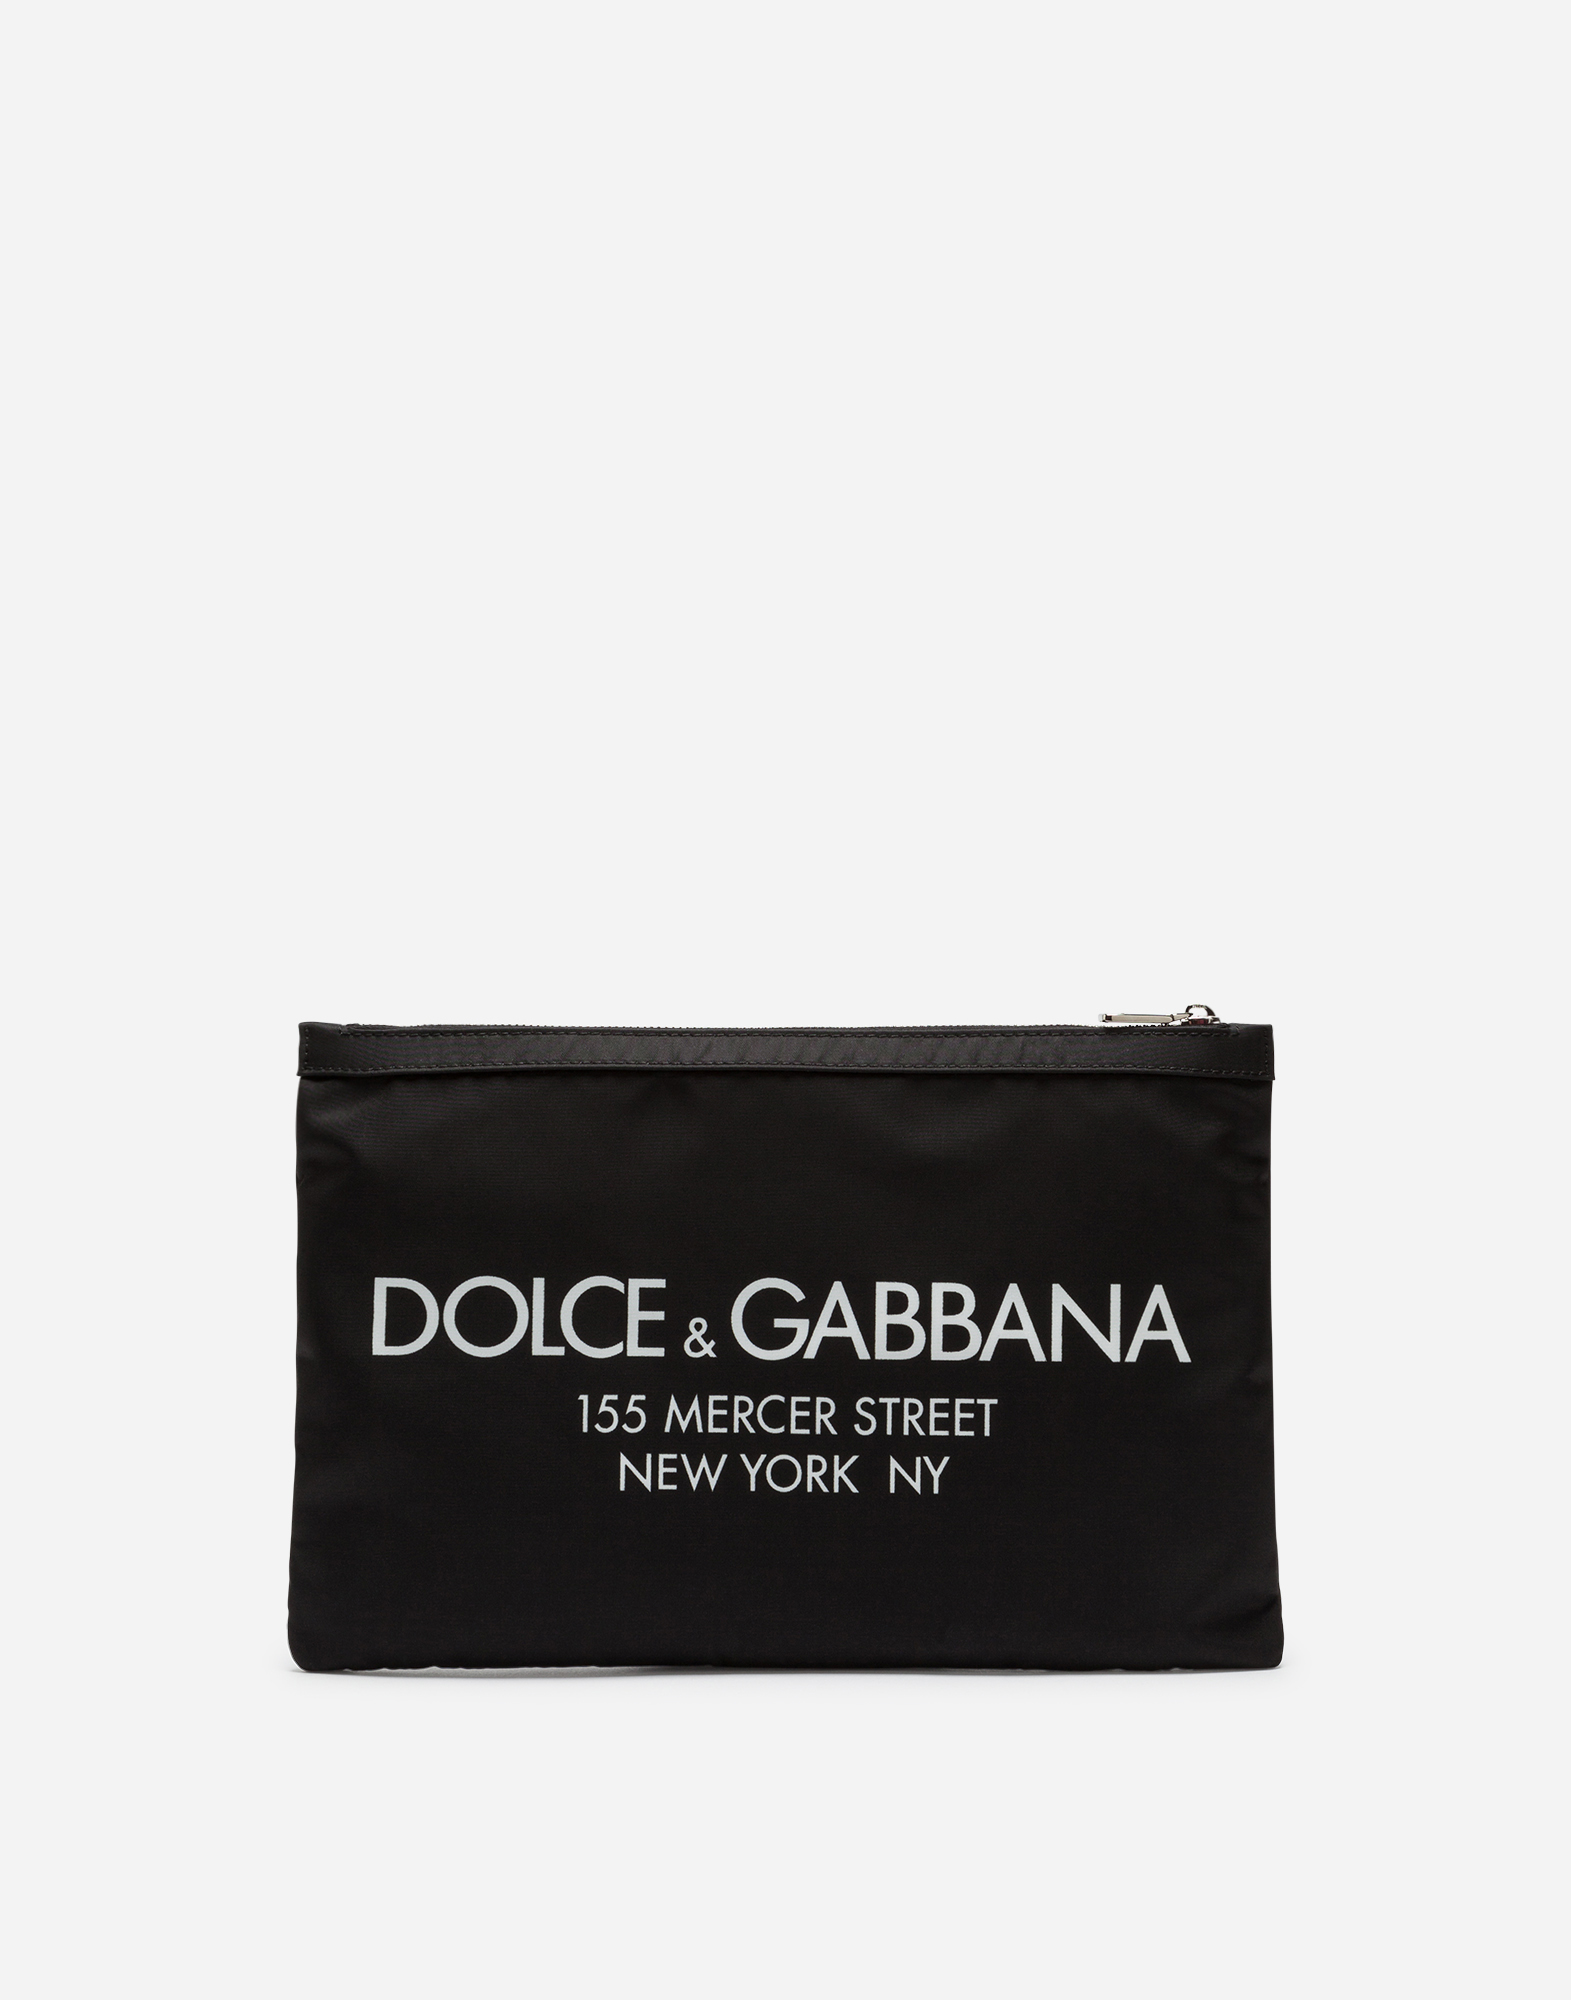 Dolce&Gabbana PRINTED NYLON DOCUMENT HOLDER